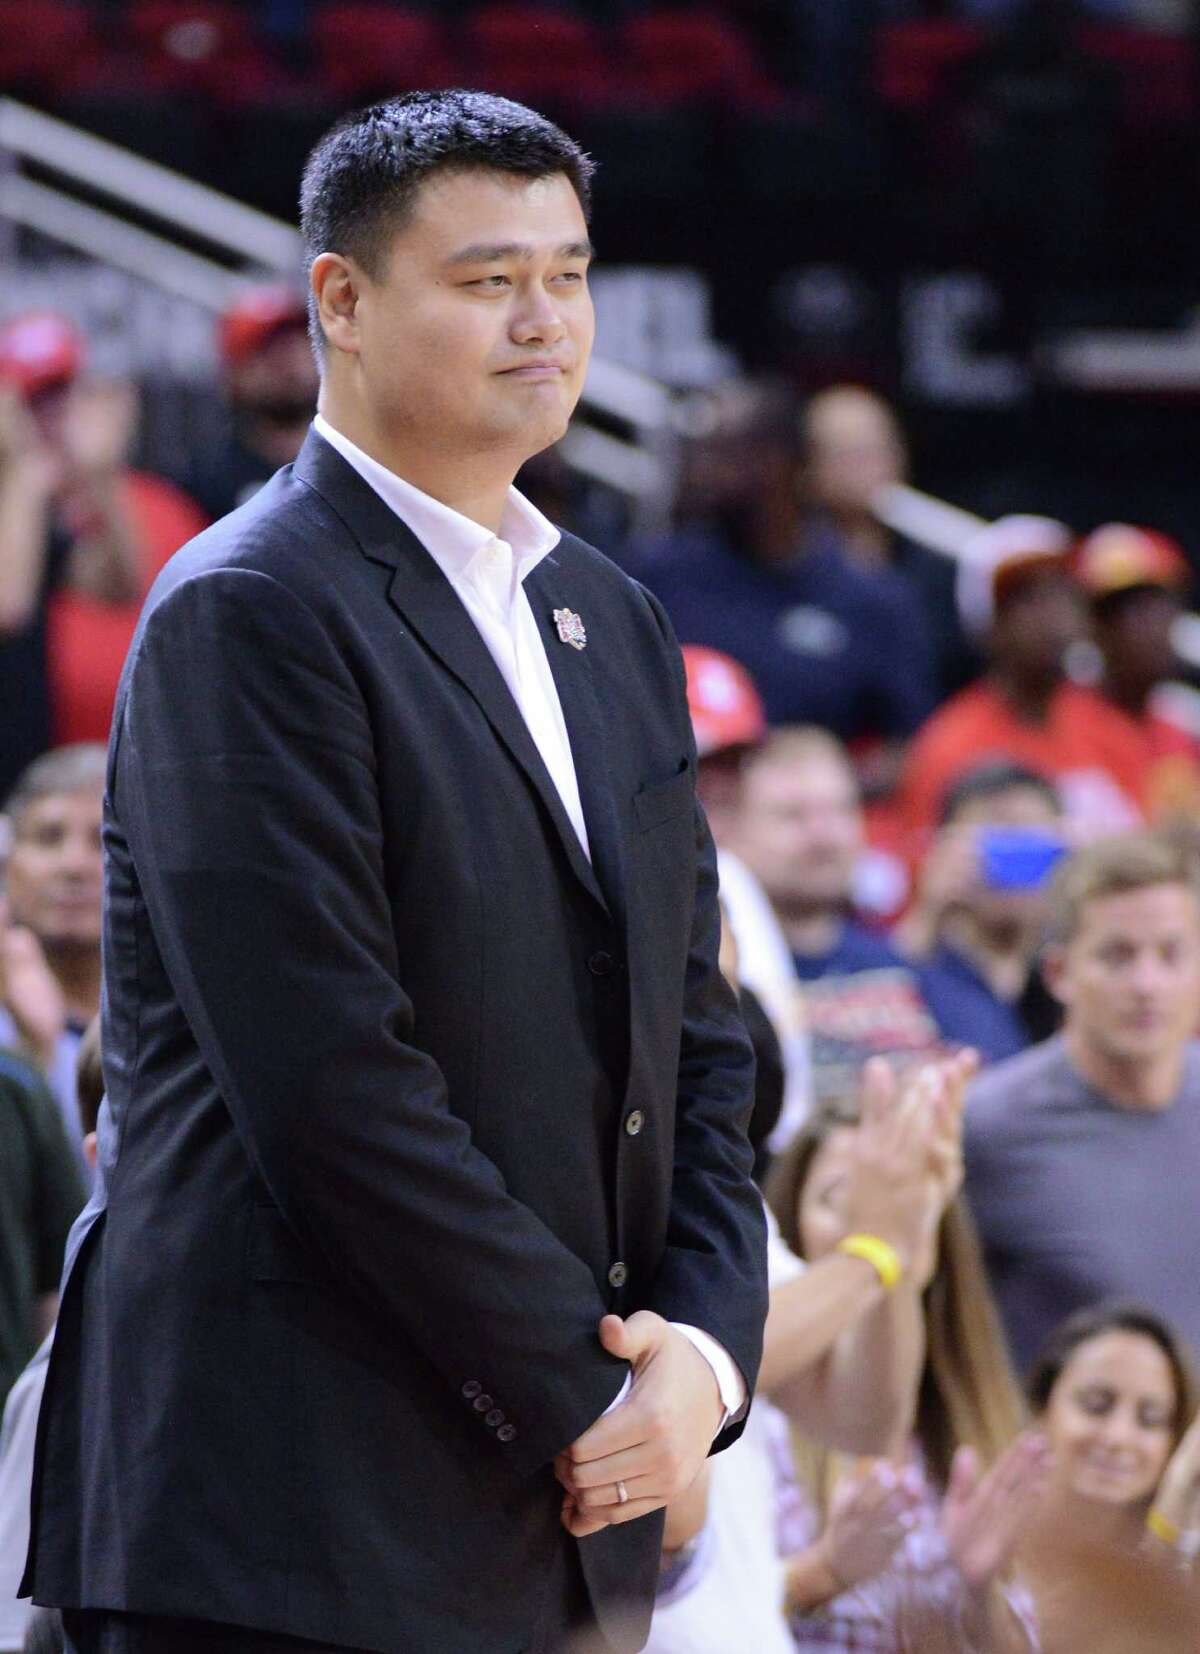 NBA Hall of Fame member Yao Ming is shown as the Houston Rockets face the Shanghai Sharks in an NBA basketball exhibition game Sunday, Oct. 2, 2016, in Houston. (AP Photo/George Bridges)